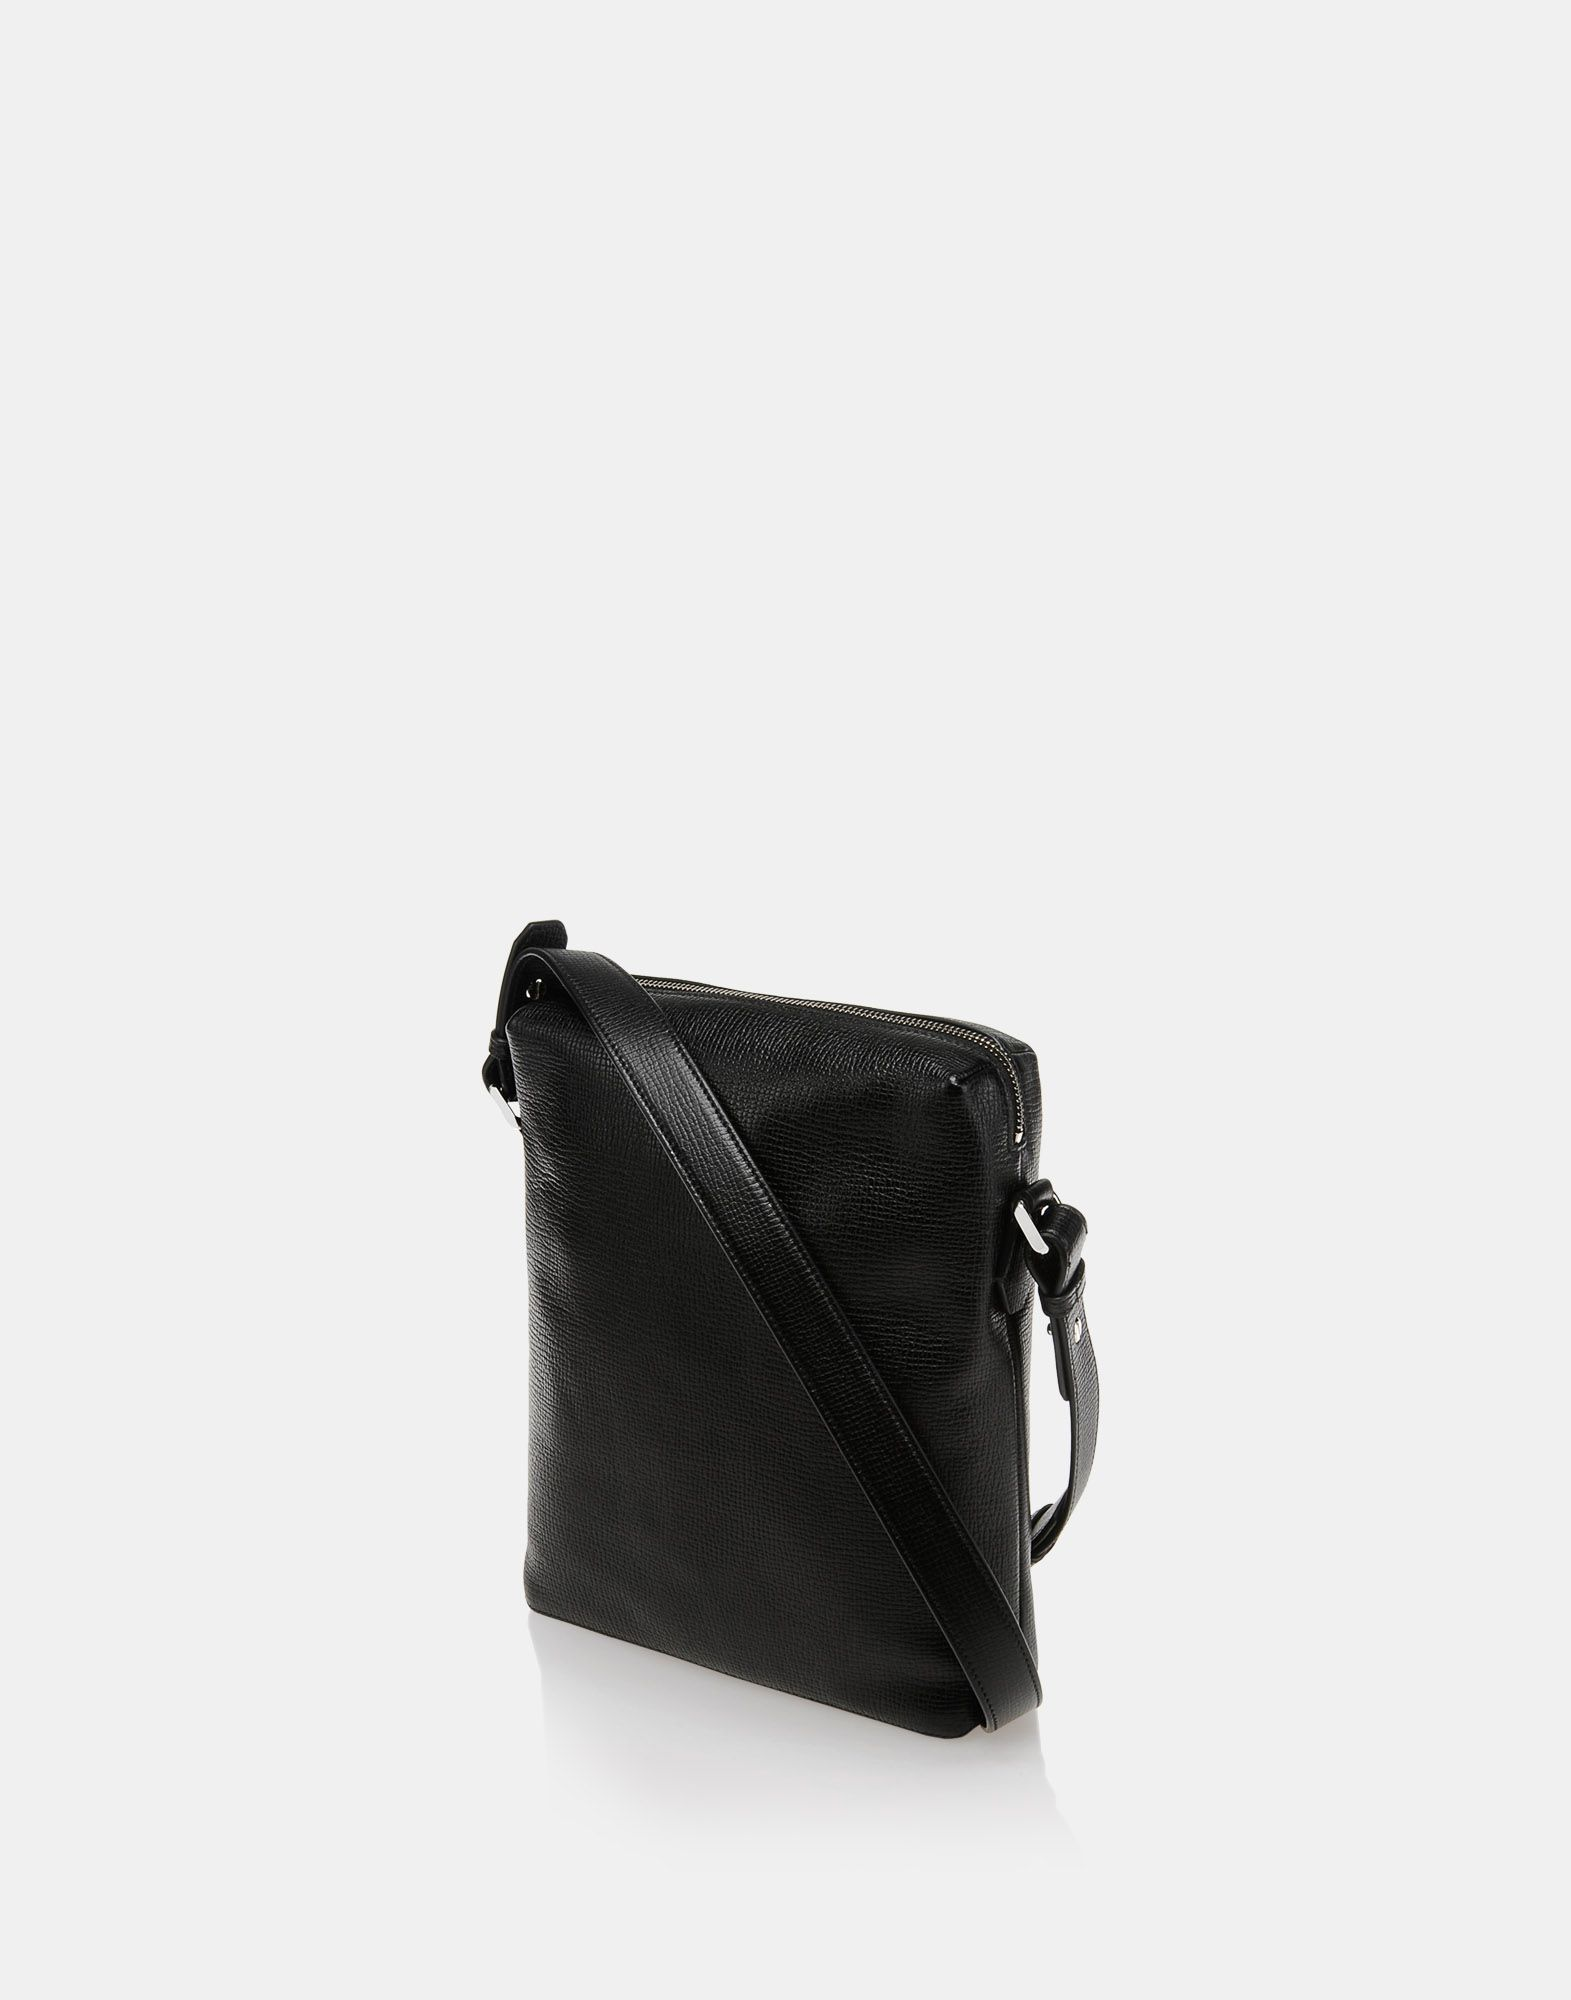 Crossbody Men Sander Store Jil On Bag Online Bags Pw4rPBnq